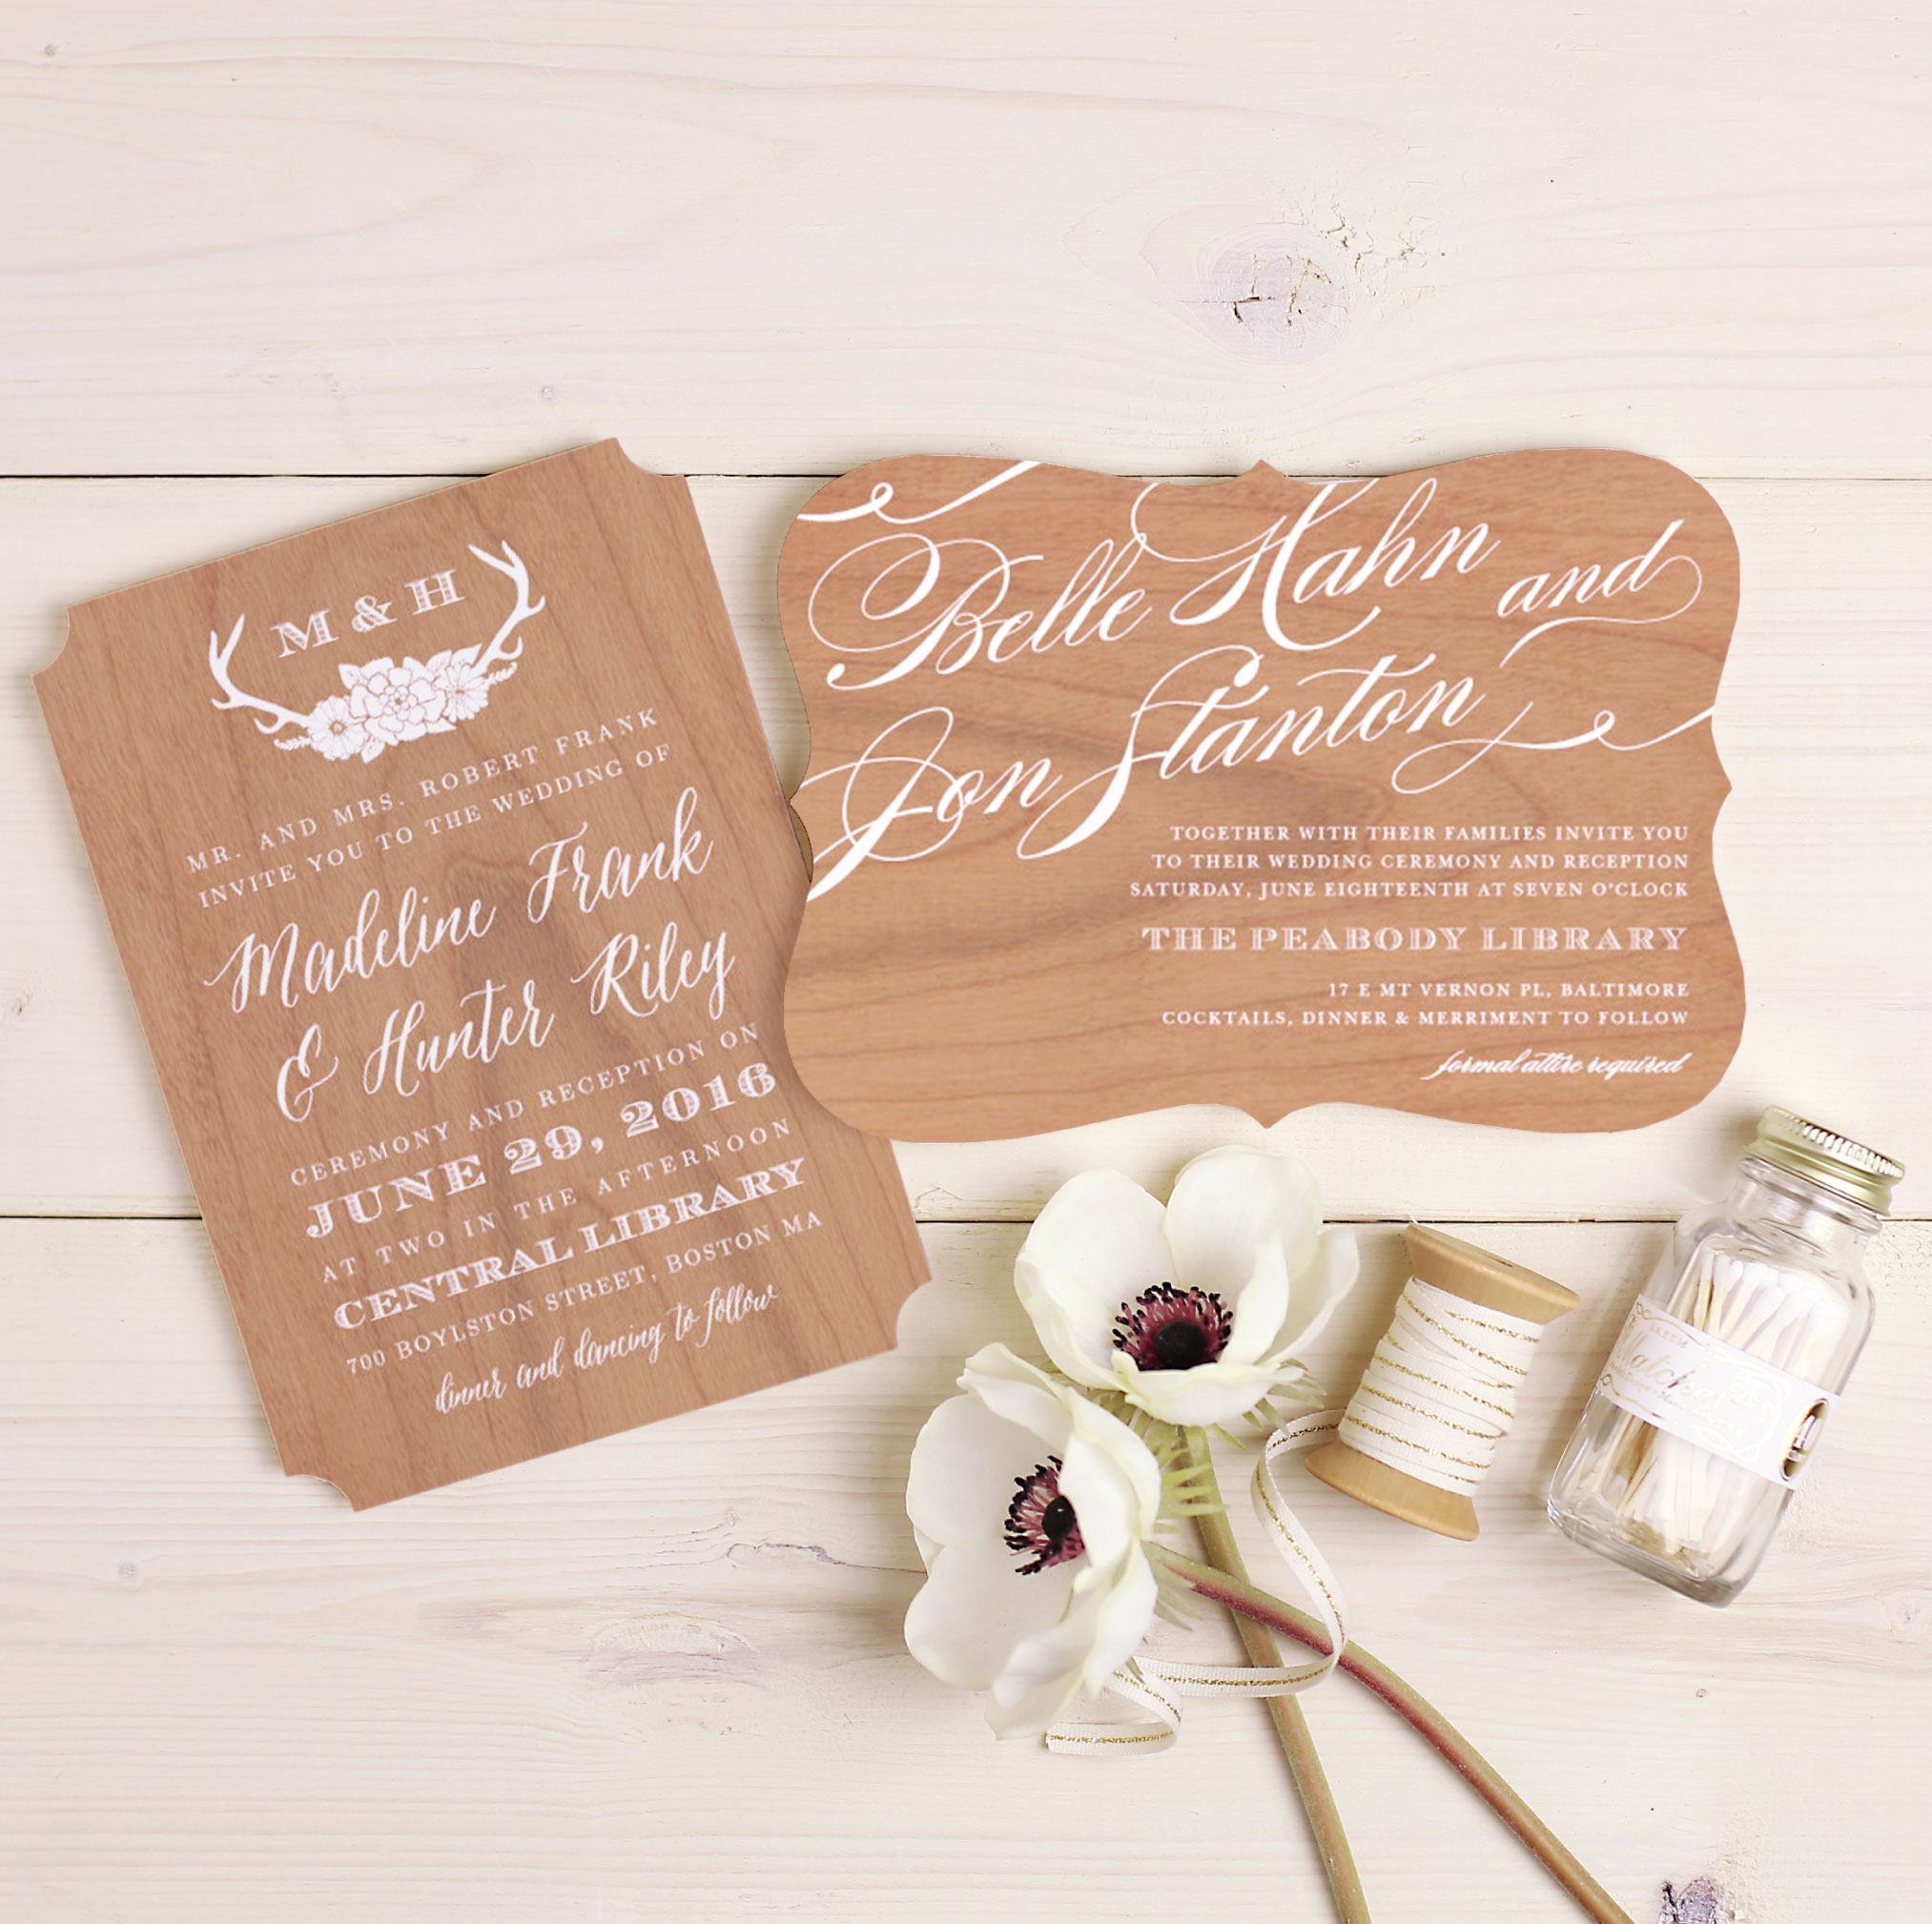 Write Your Own Wedding Invitations: Create Your Own Rustic Barn Wedding Invitations